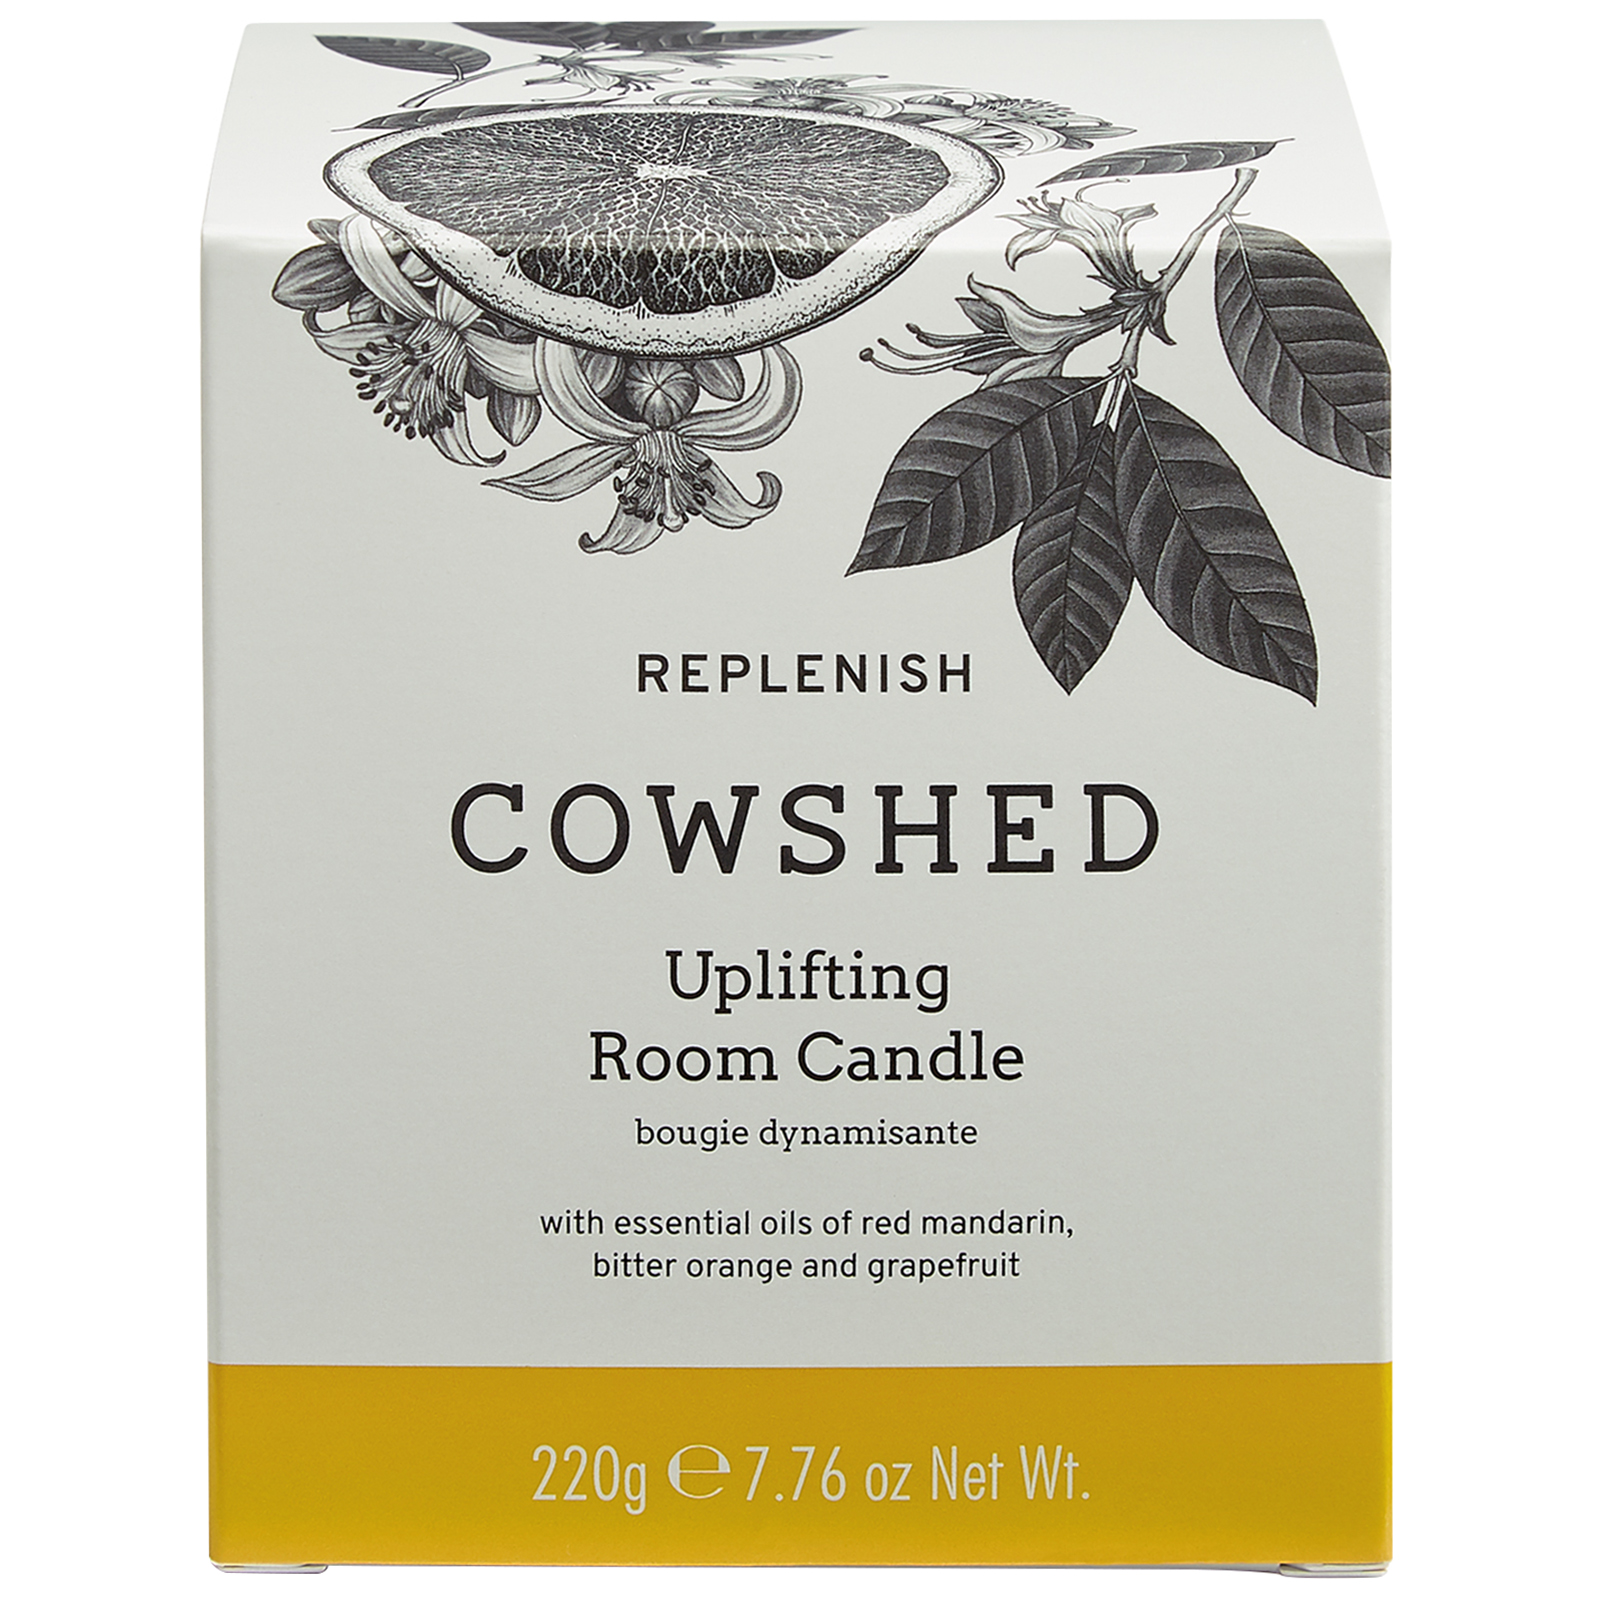 Cowshed REPLENISH Uplifting Room Candle 220g